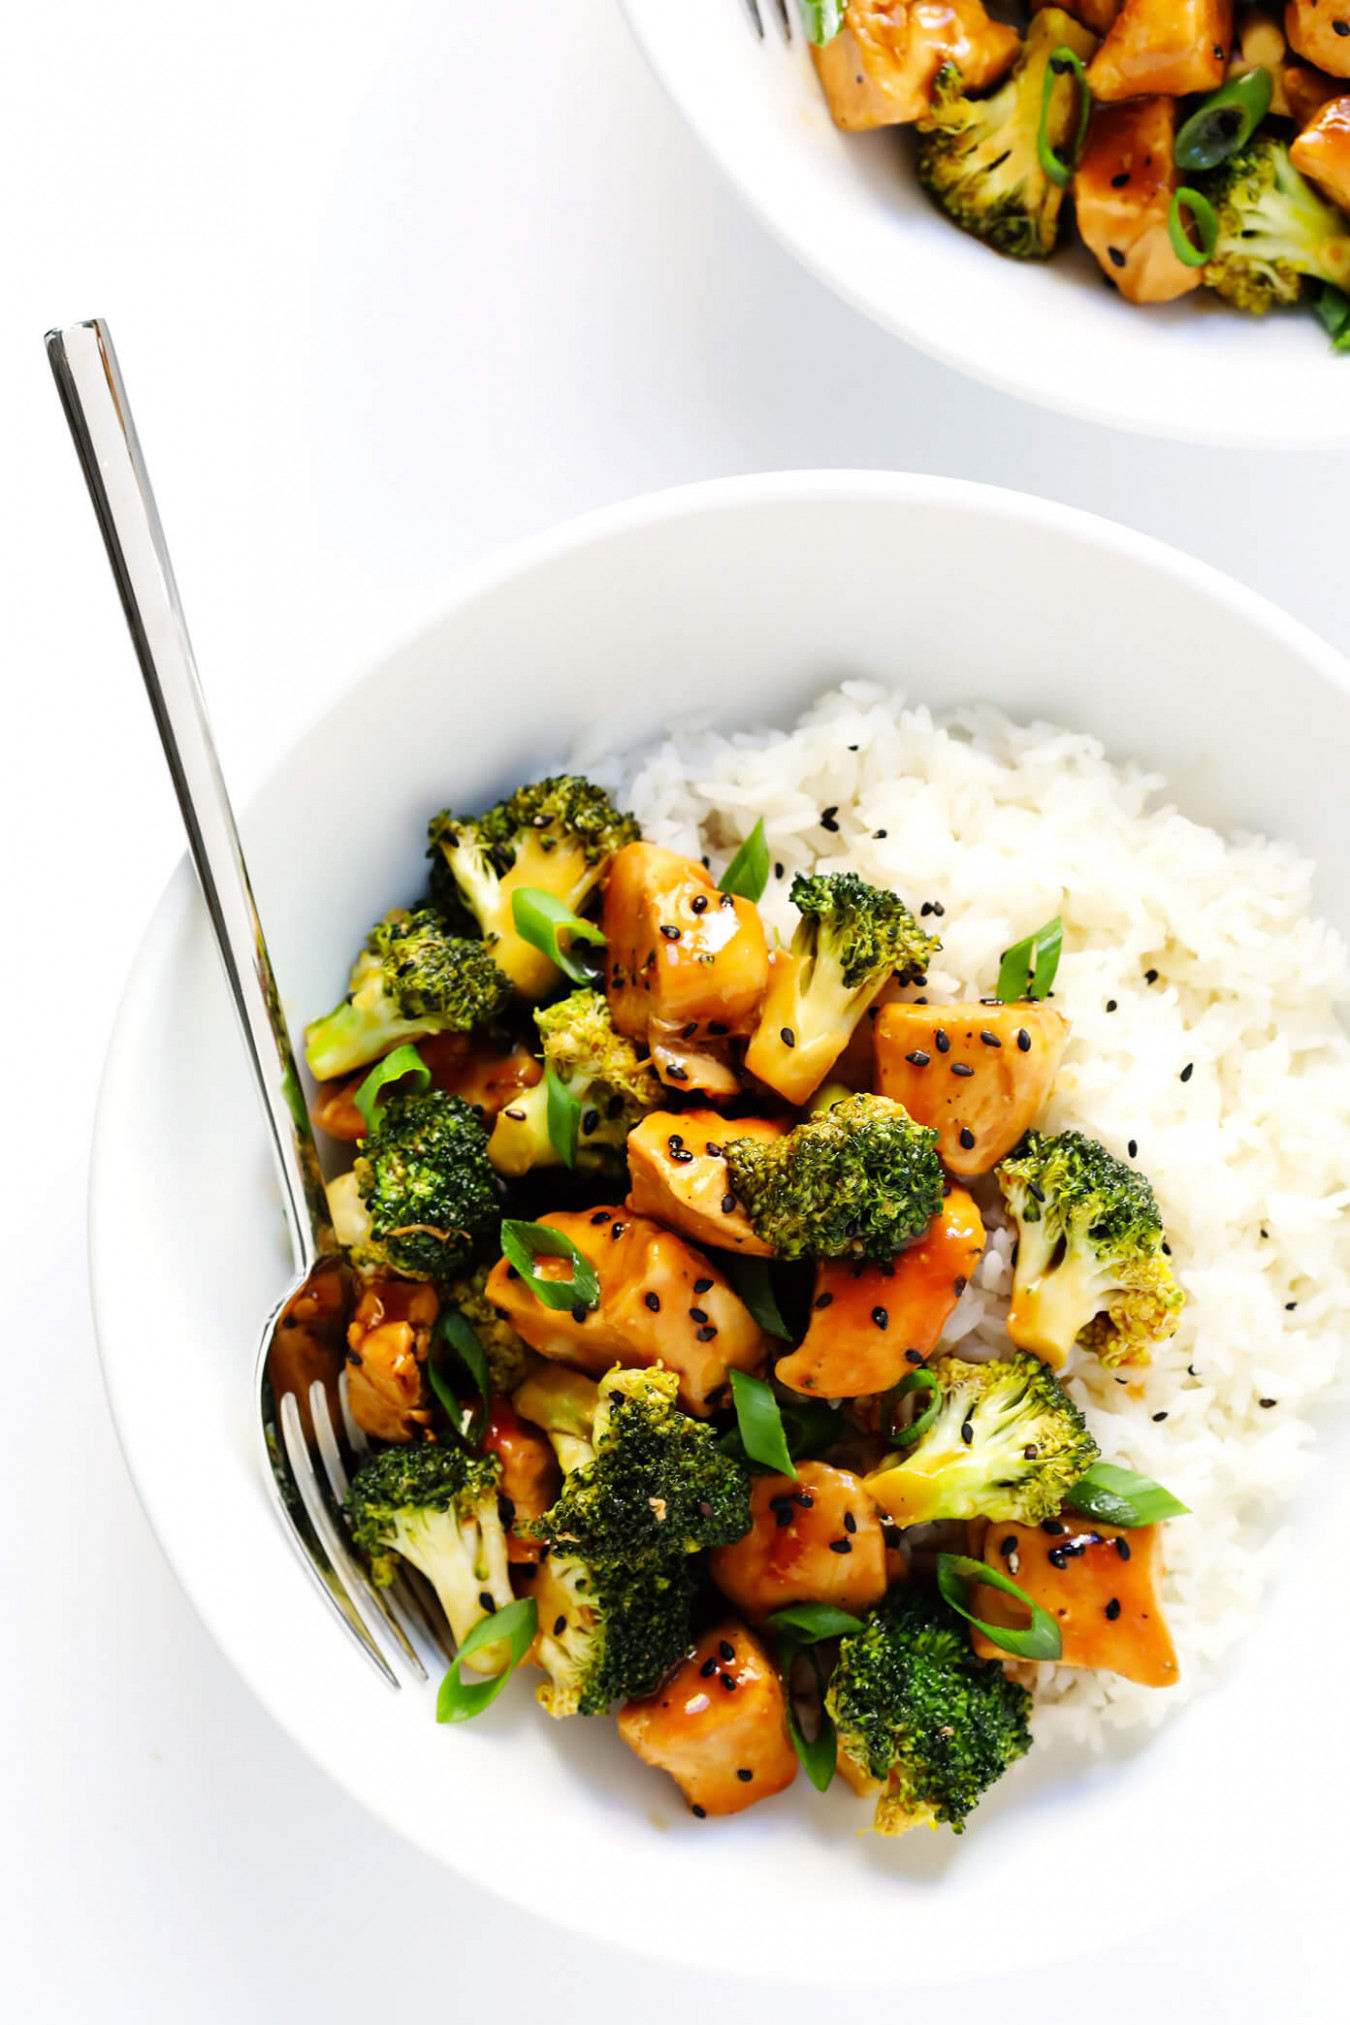 15-Minute Chicken and Broccoli - recipes dinner nz